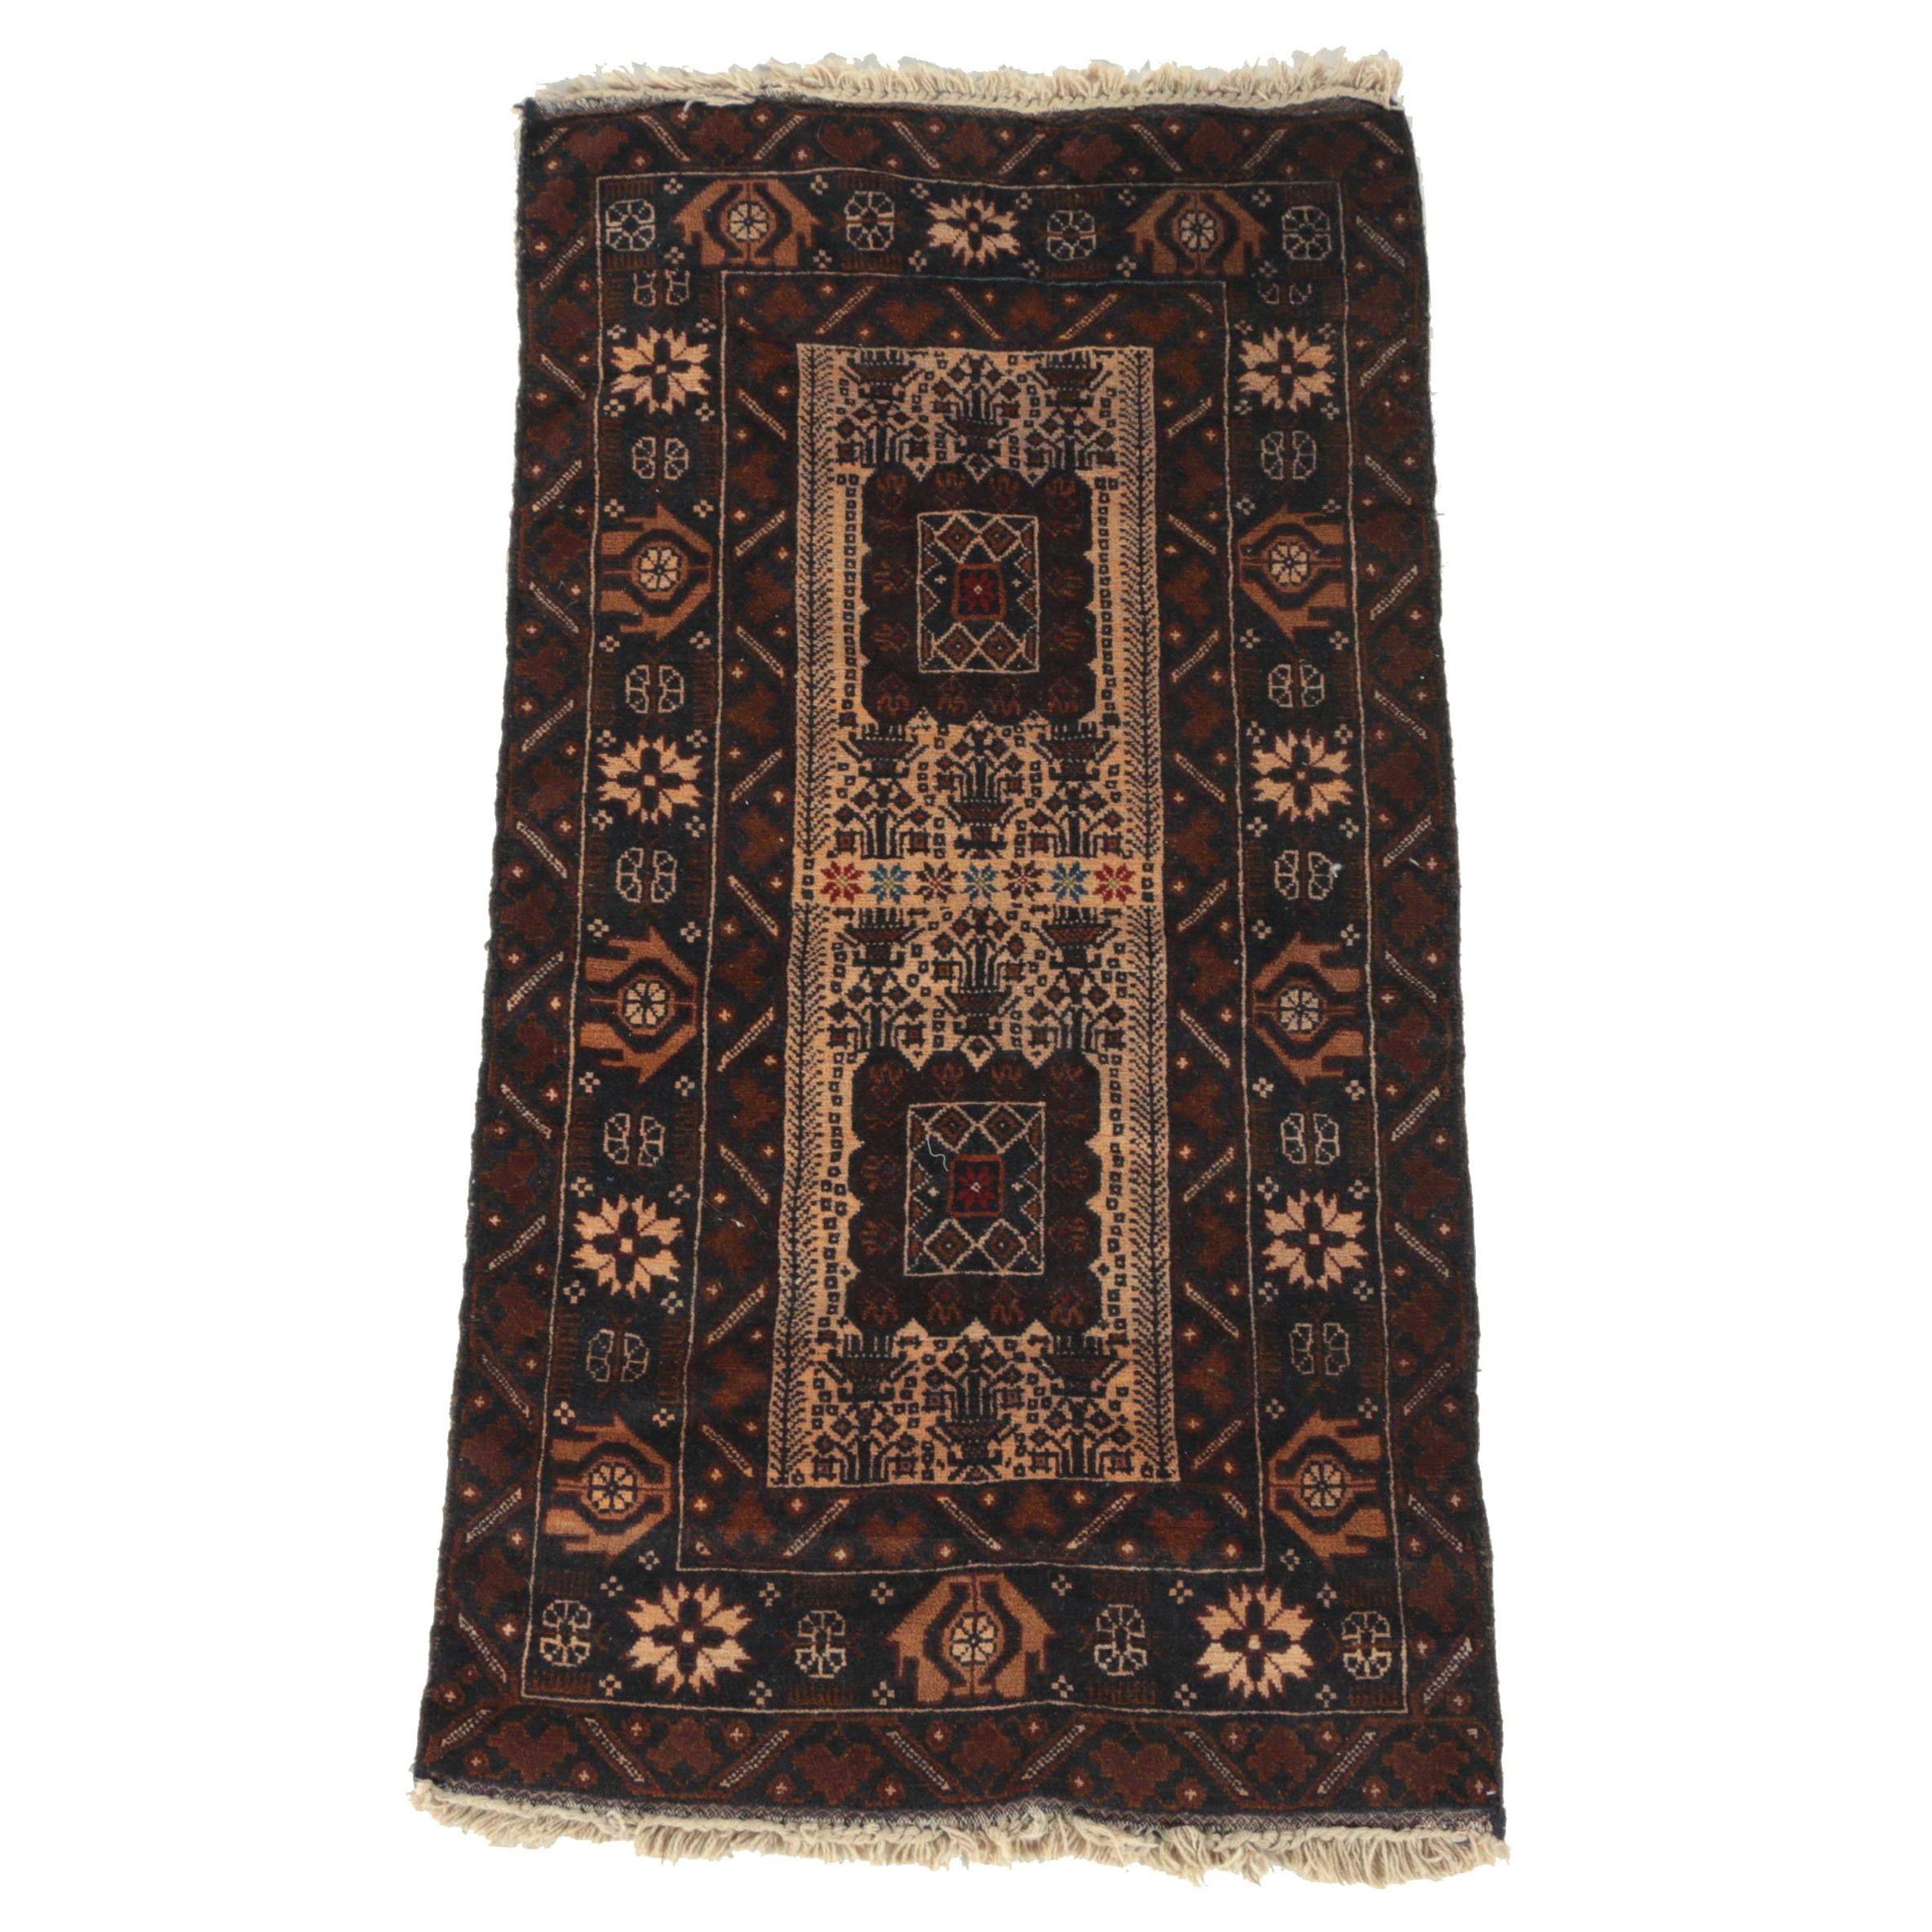 Semi-Antique Hand-Knotted Persian Baluch Wool Rug